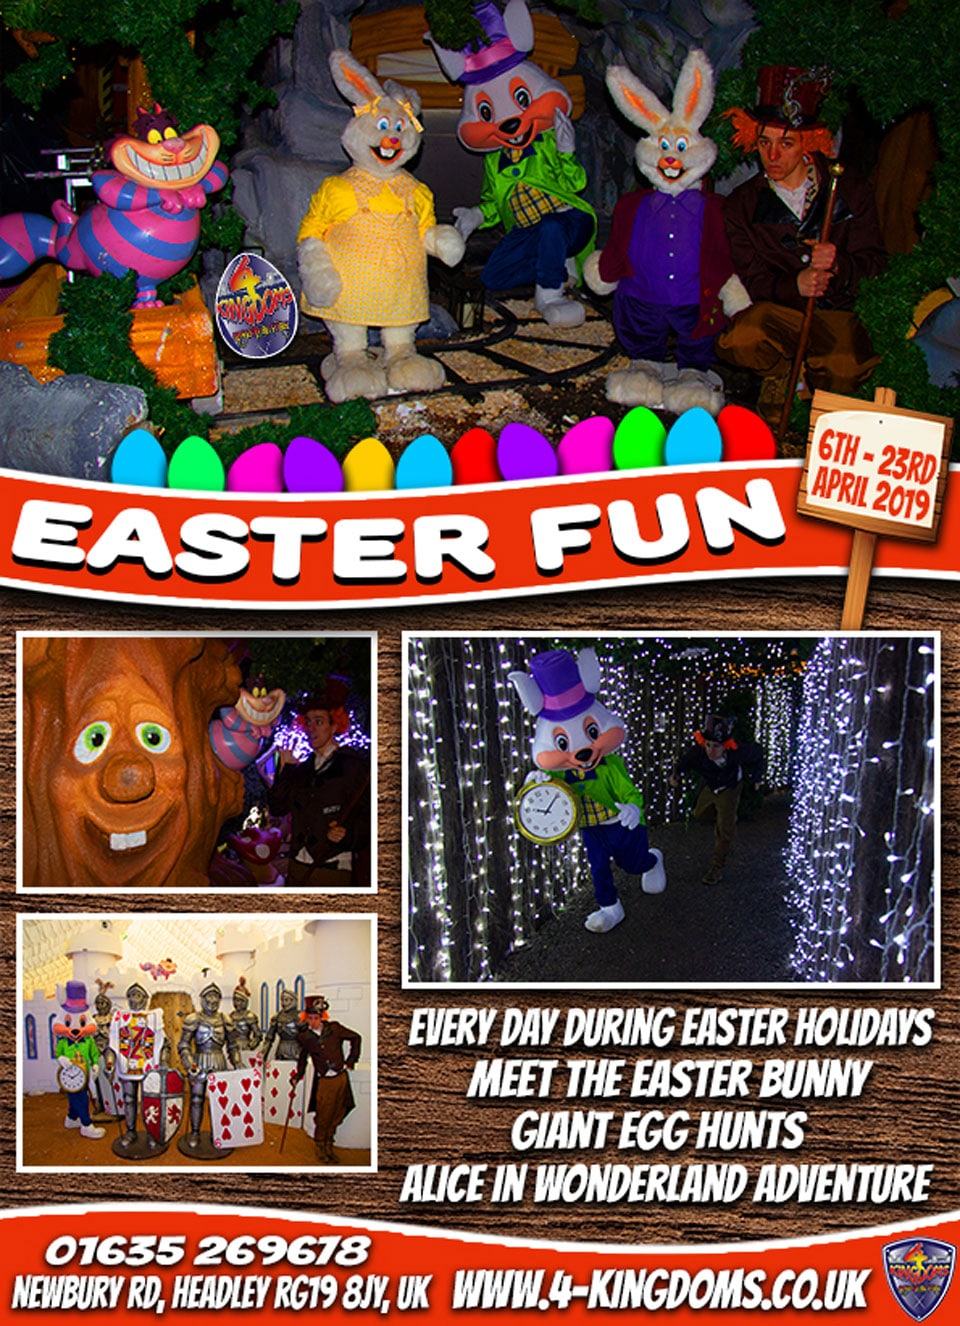 Easter School Holidays Family fun & Adventure